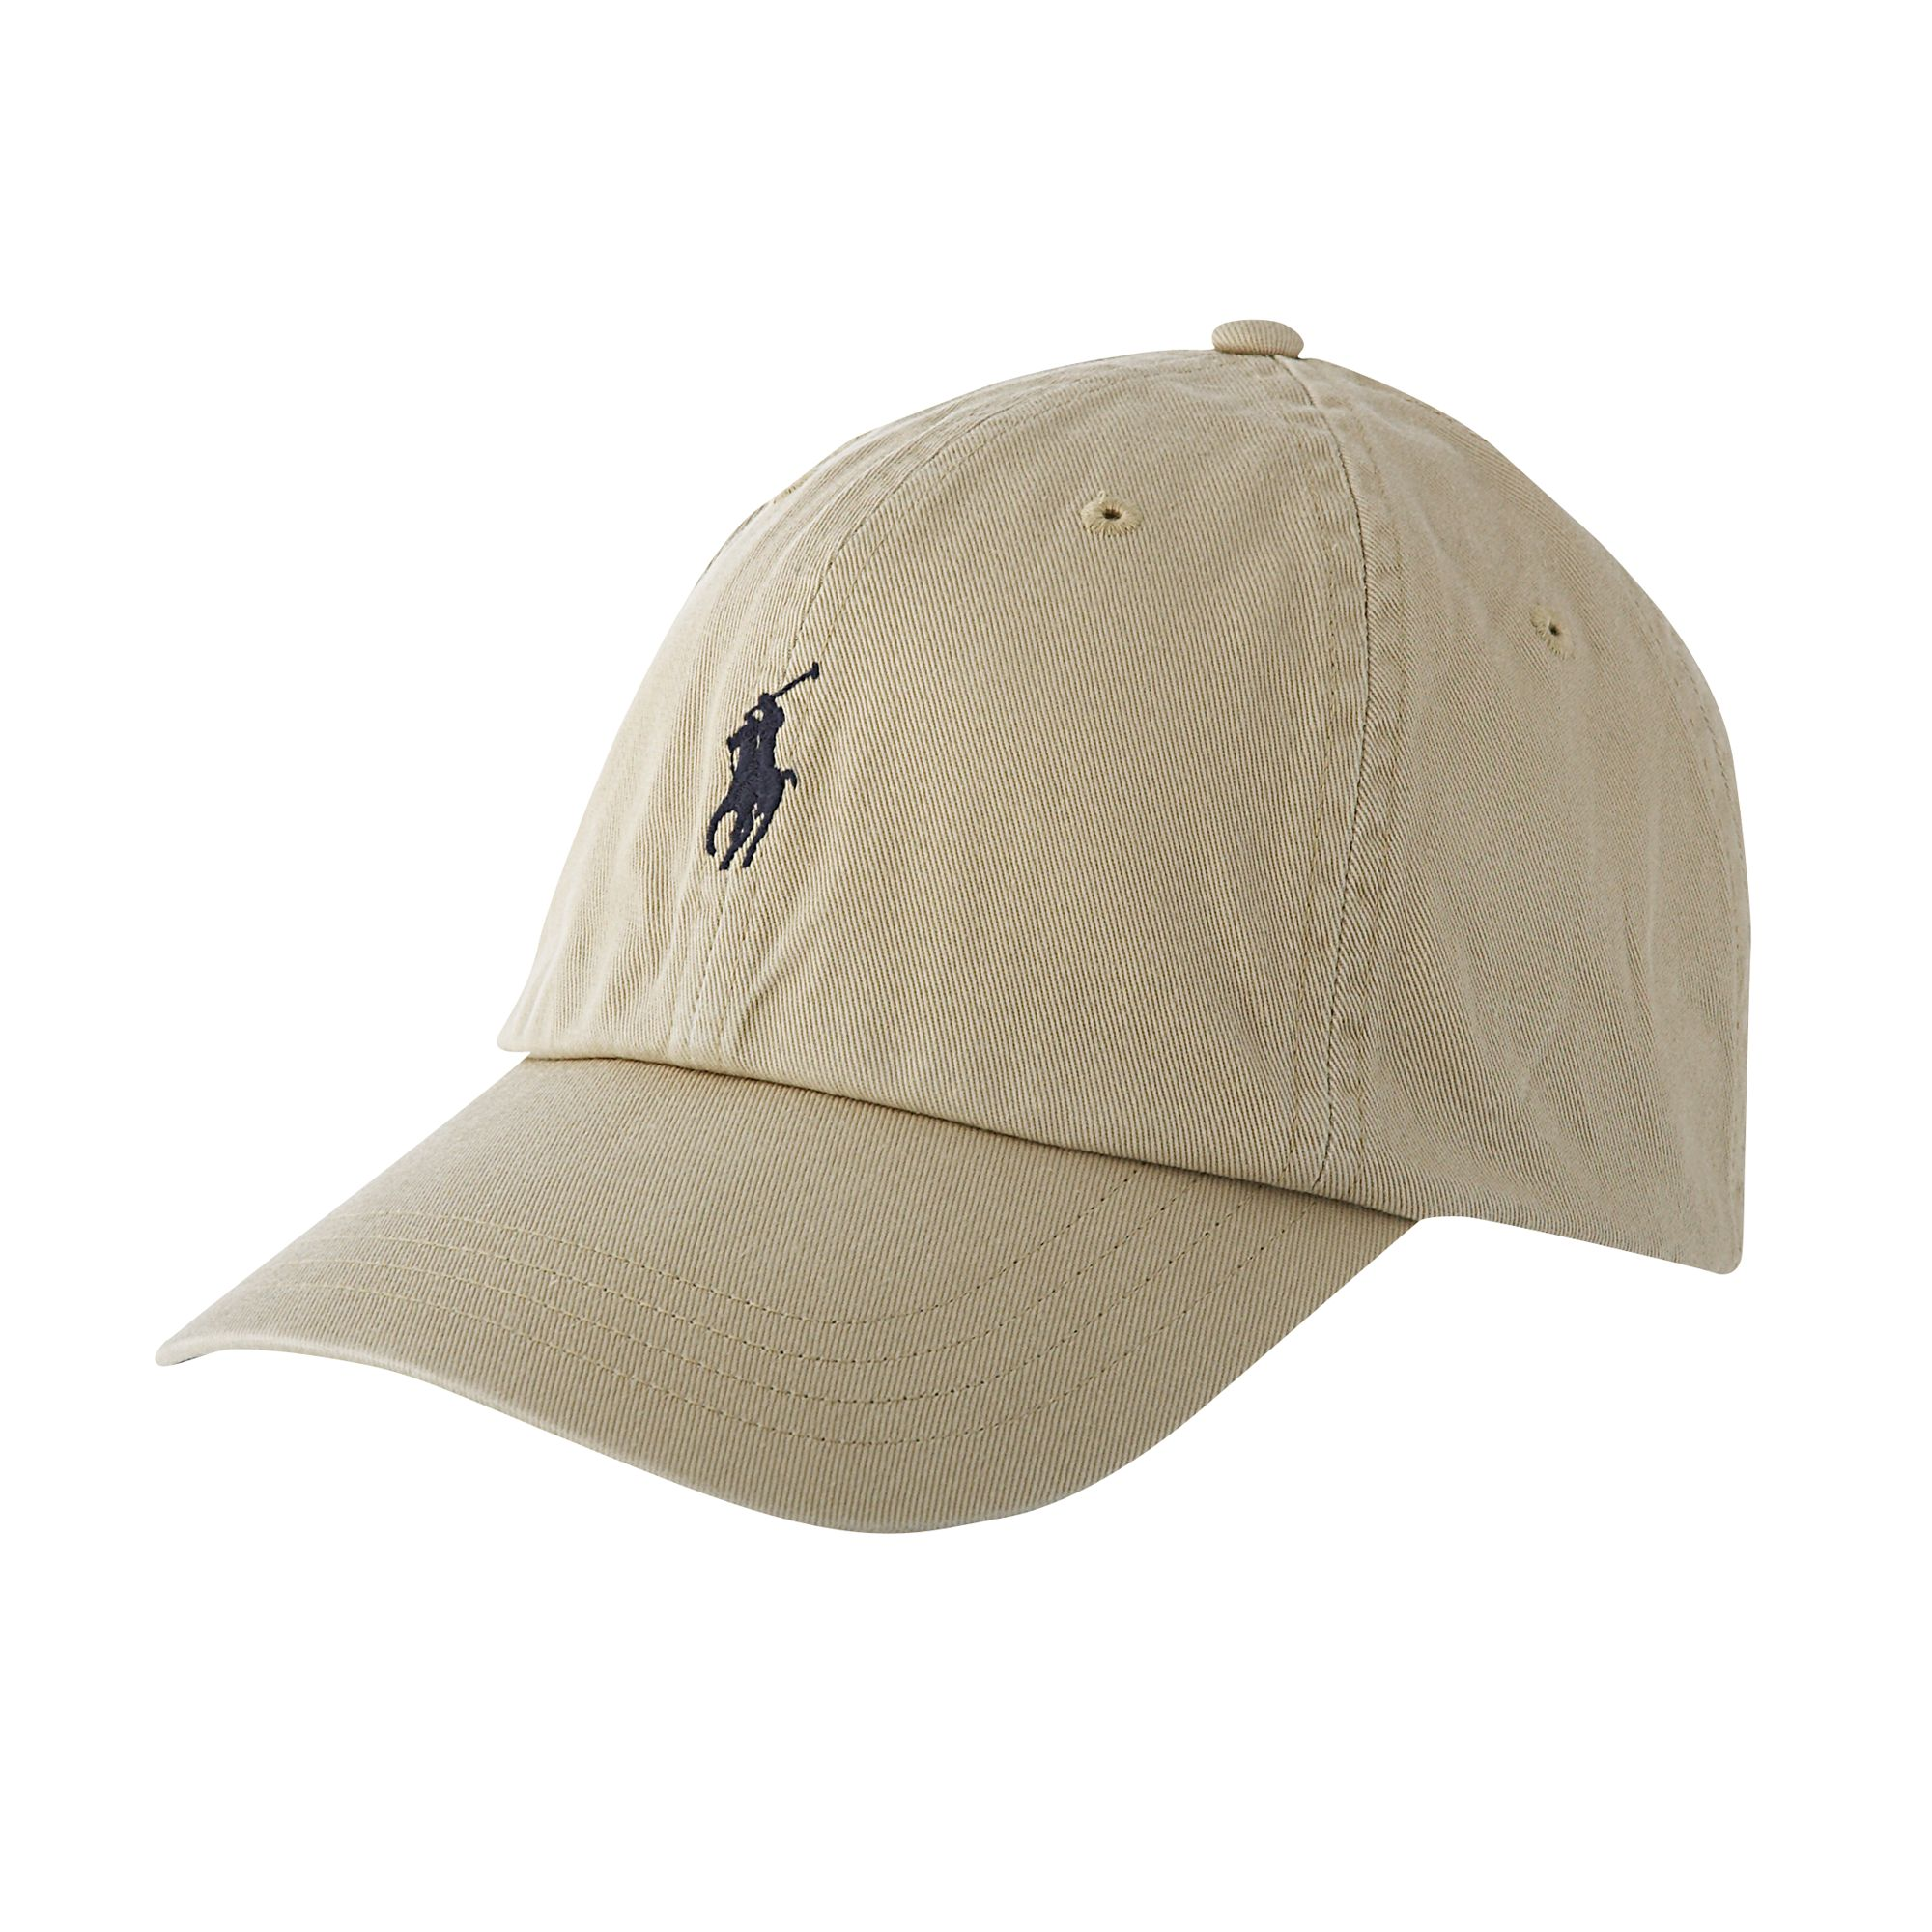 polo ralph lauren logo cap in natural for men lyst. Black Bedroom Furniture Sets. Home Design Ideas